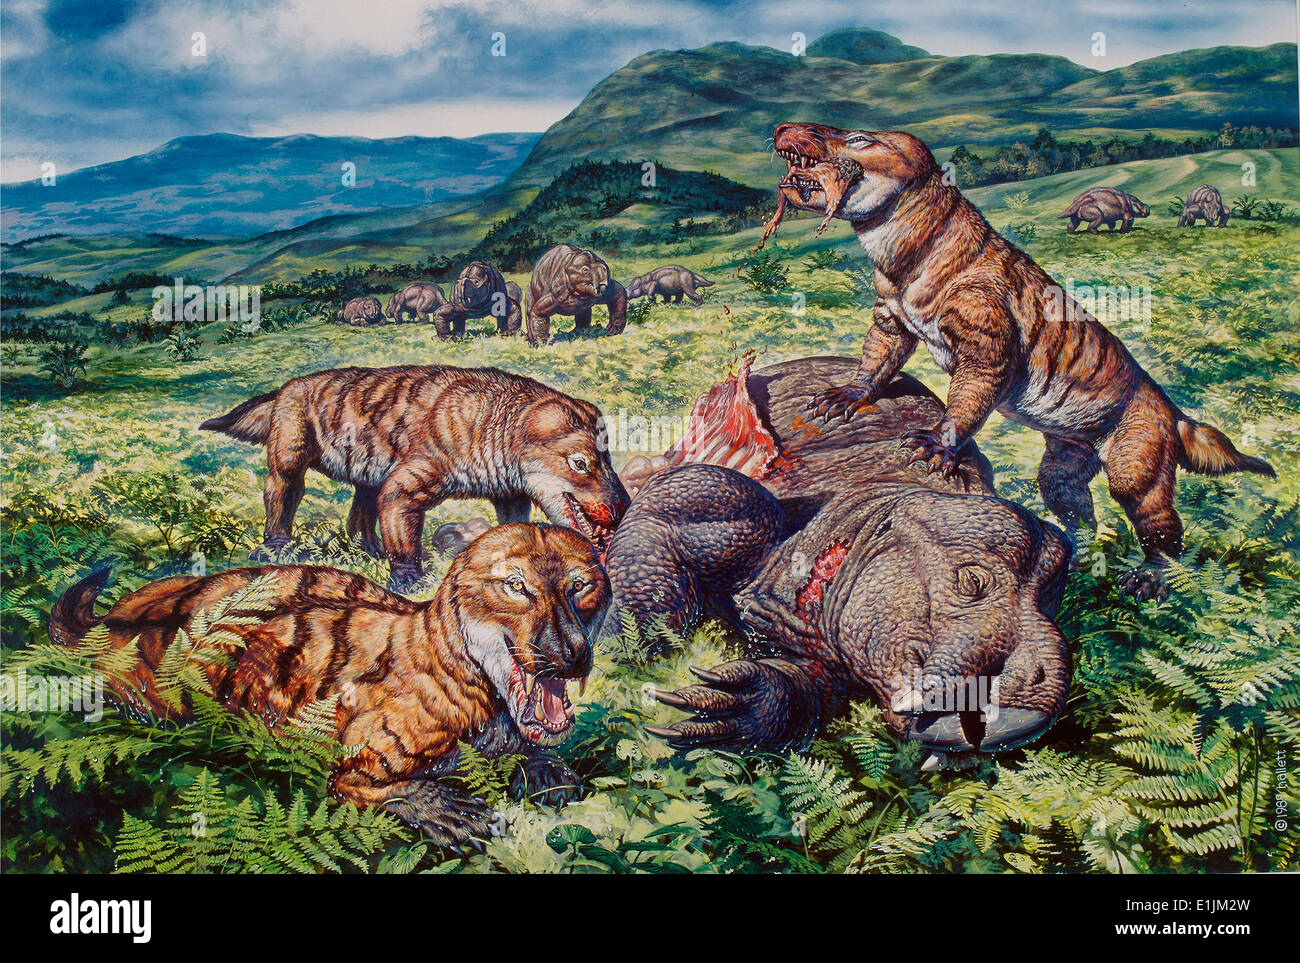 A group of carnivorous Cynognathus prey on a Placerias dicynodont. - Stock Image